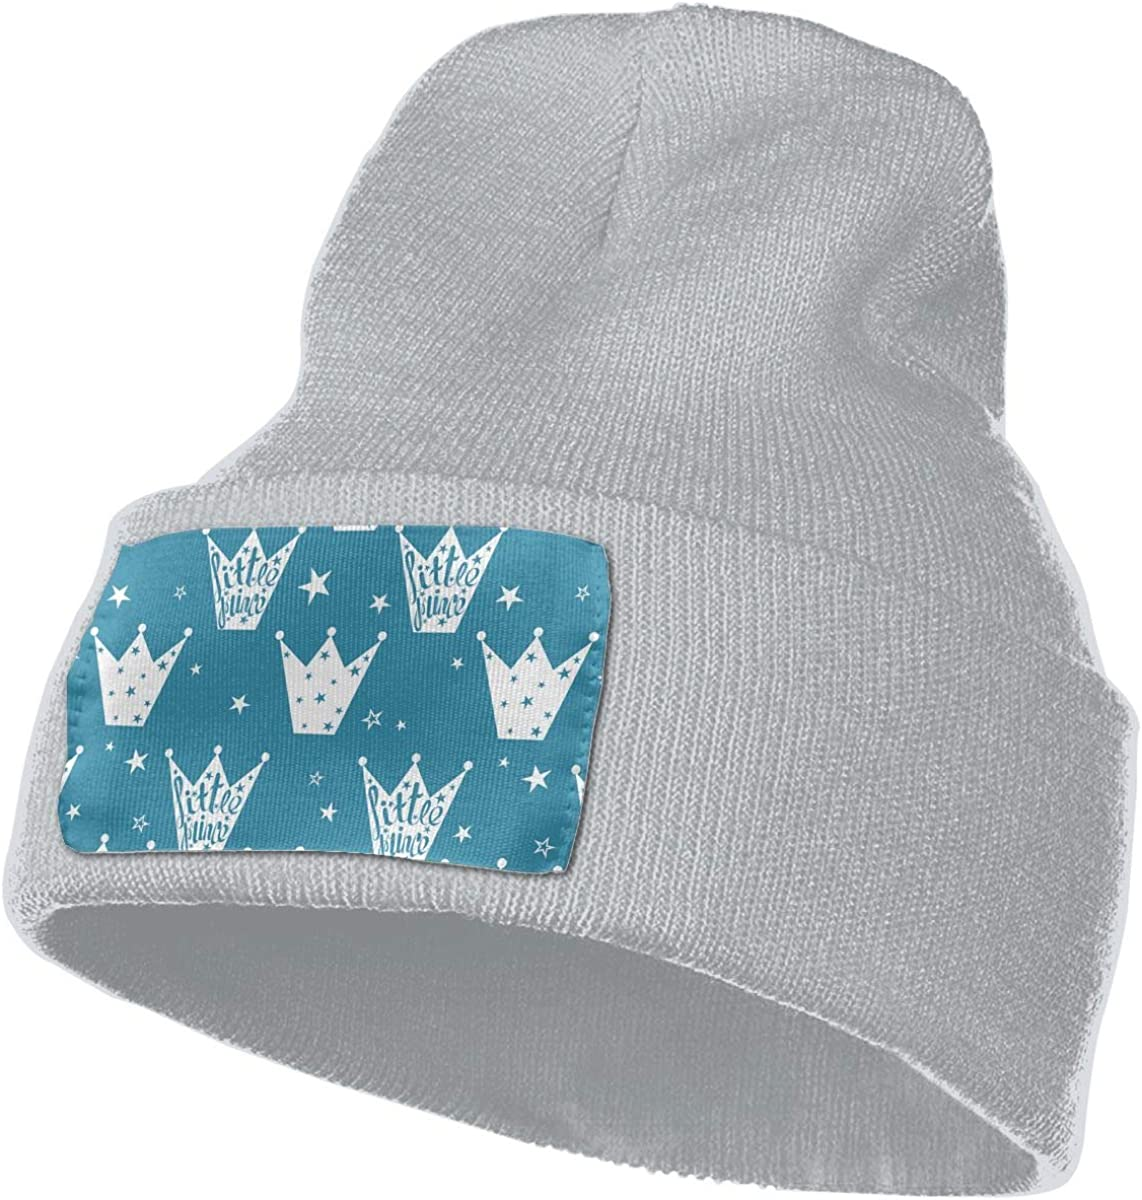 QZqDQ Crowns and Stars Unisex Fashion Knitted Hat Luxury Hip-Hop Cap